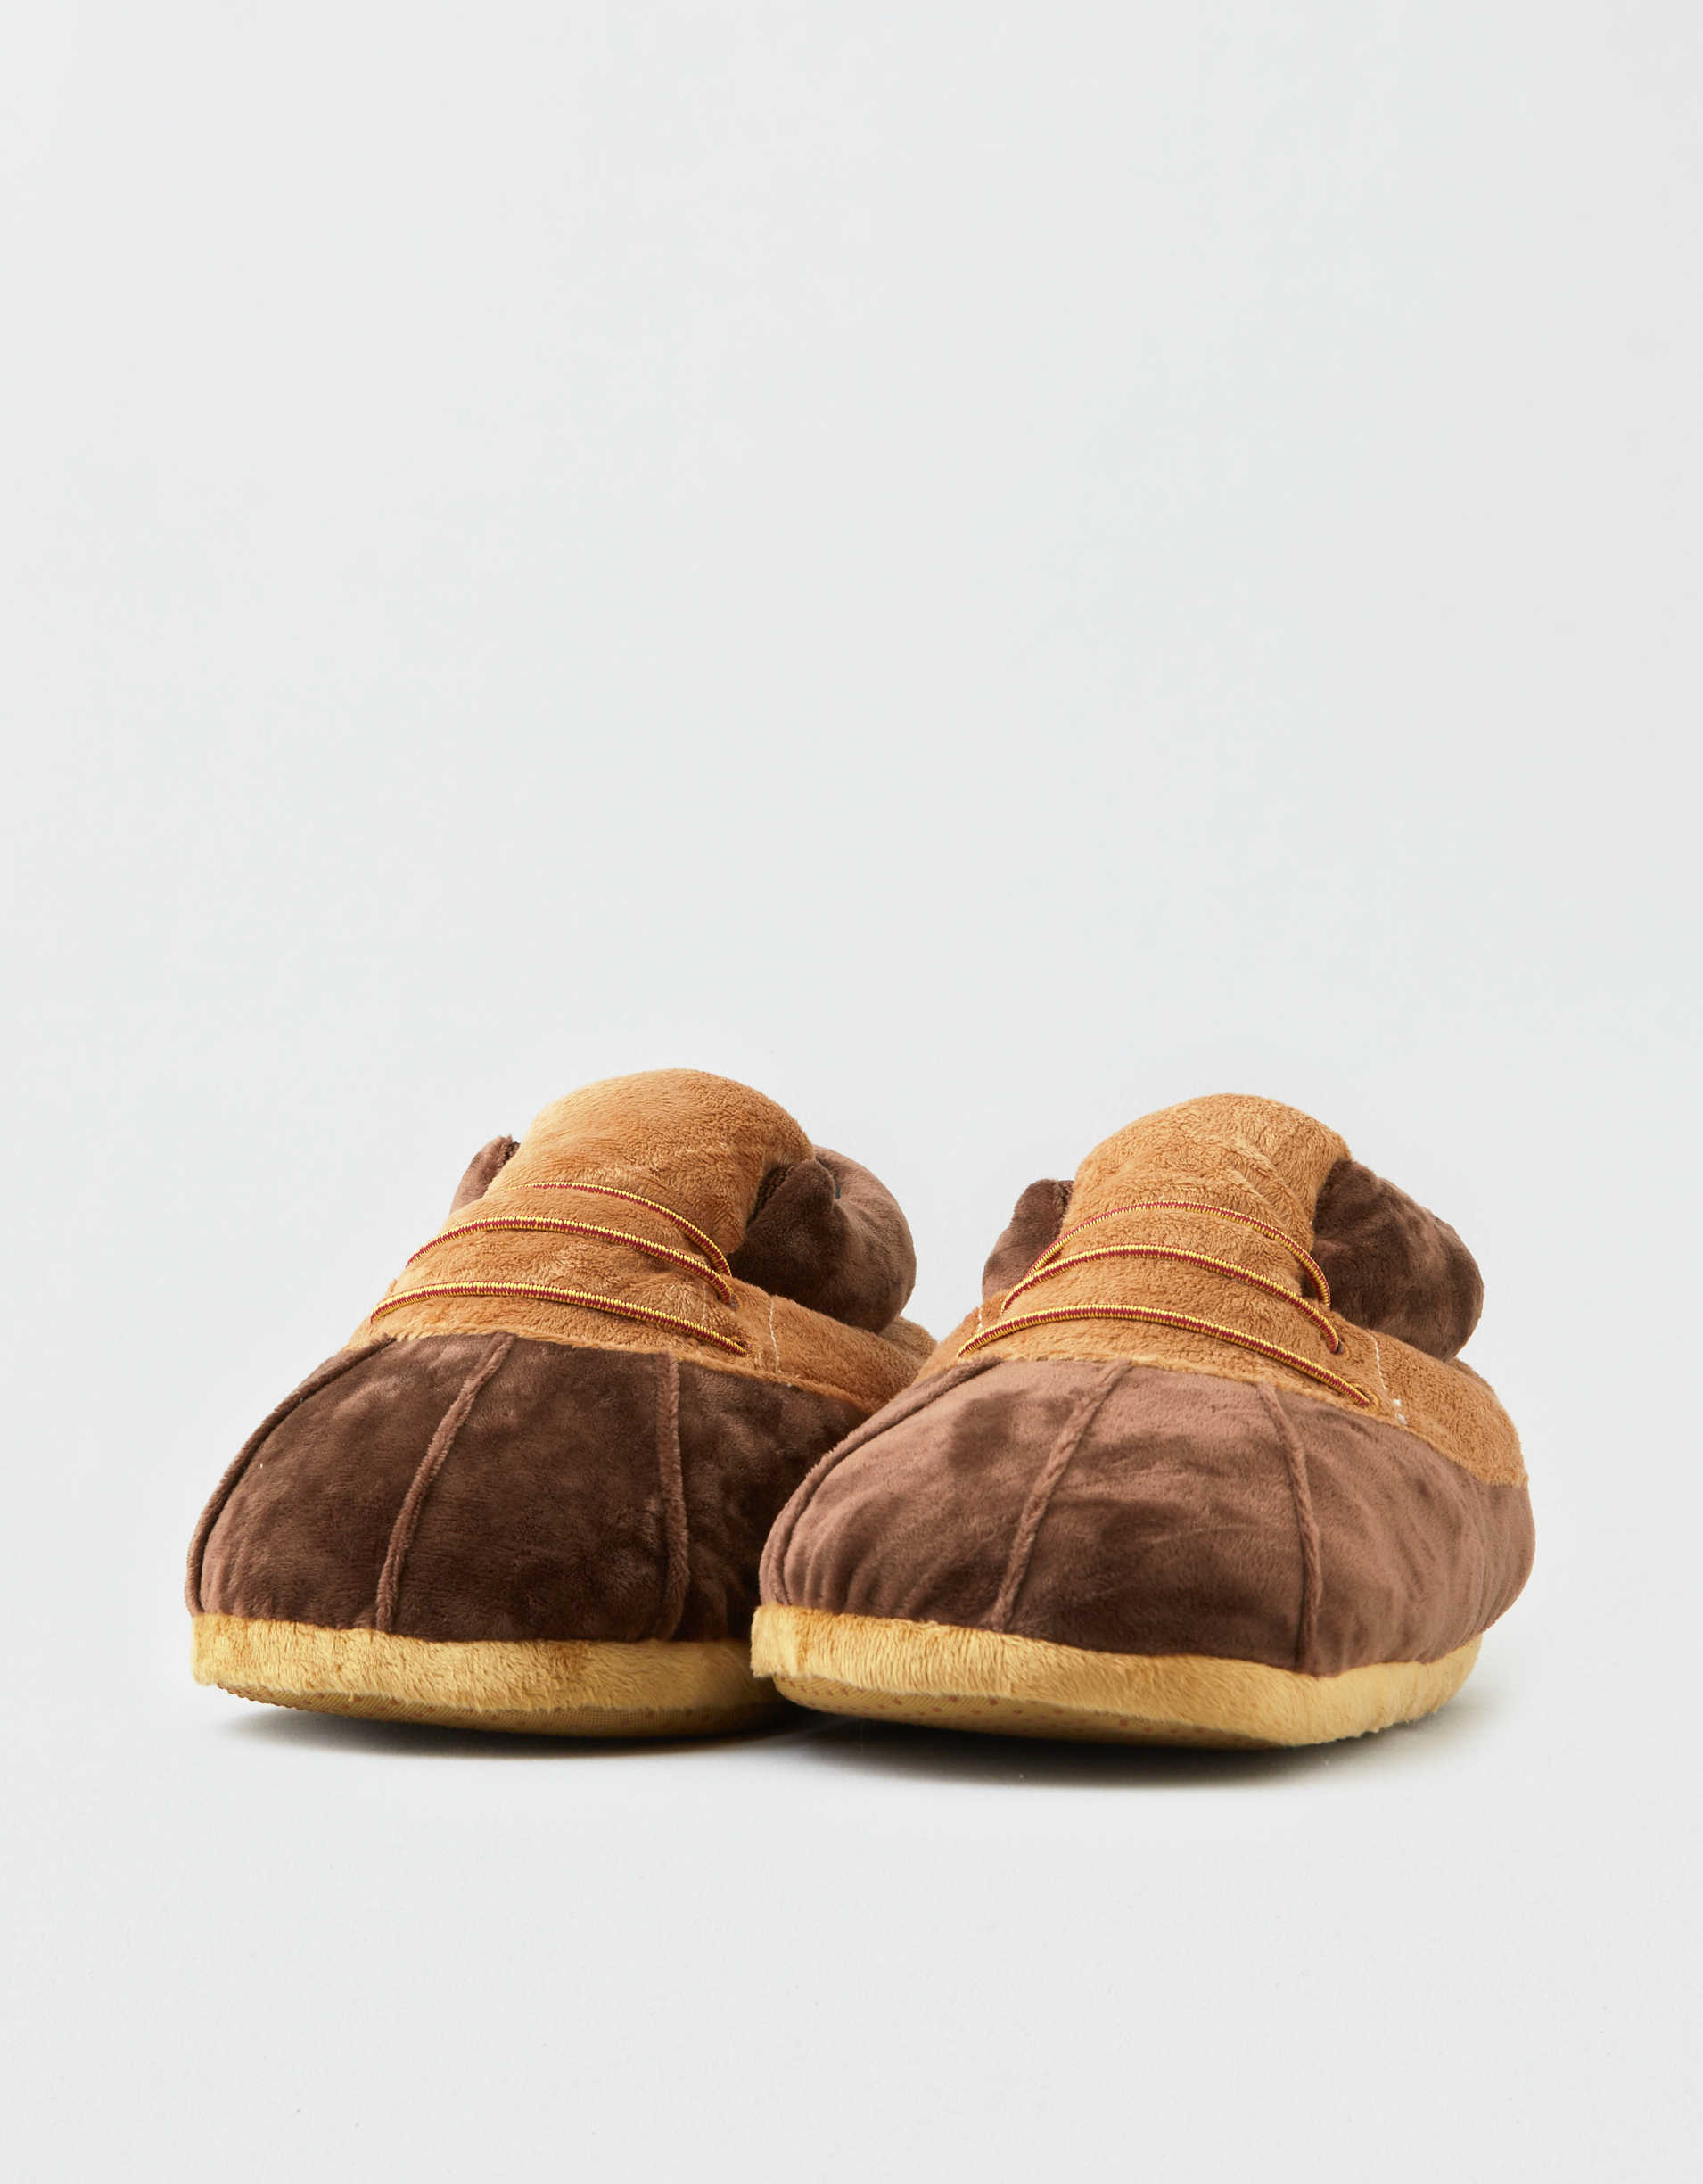 Aeo Plush Boot Slipper by American Eagle Outfitters